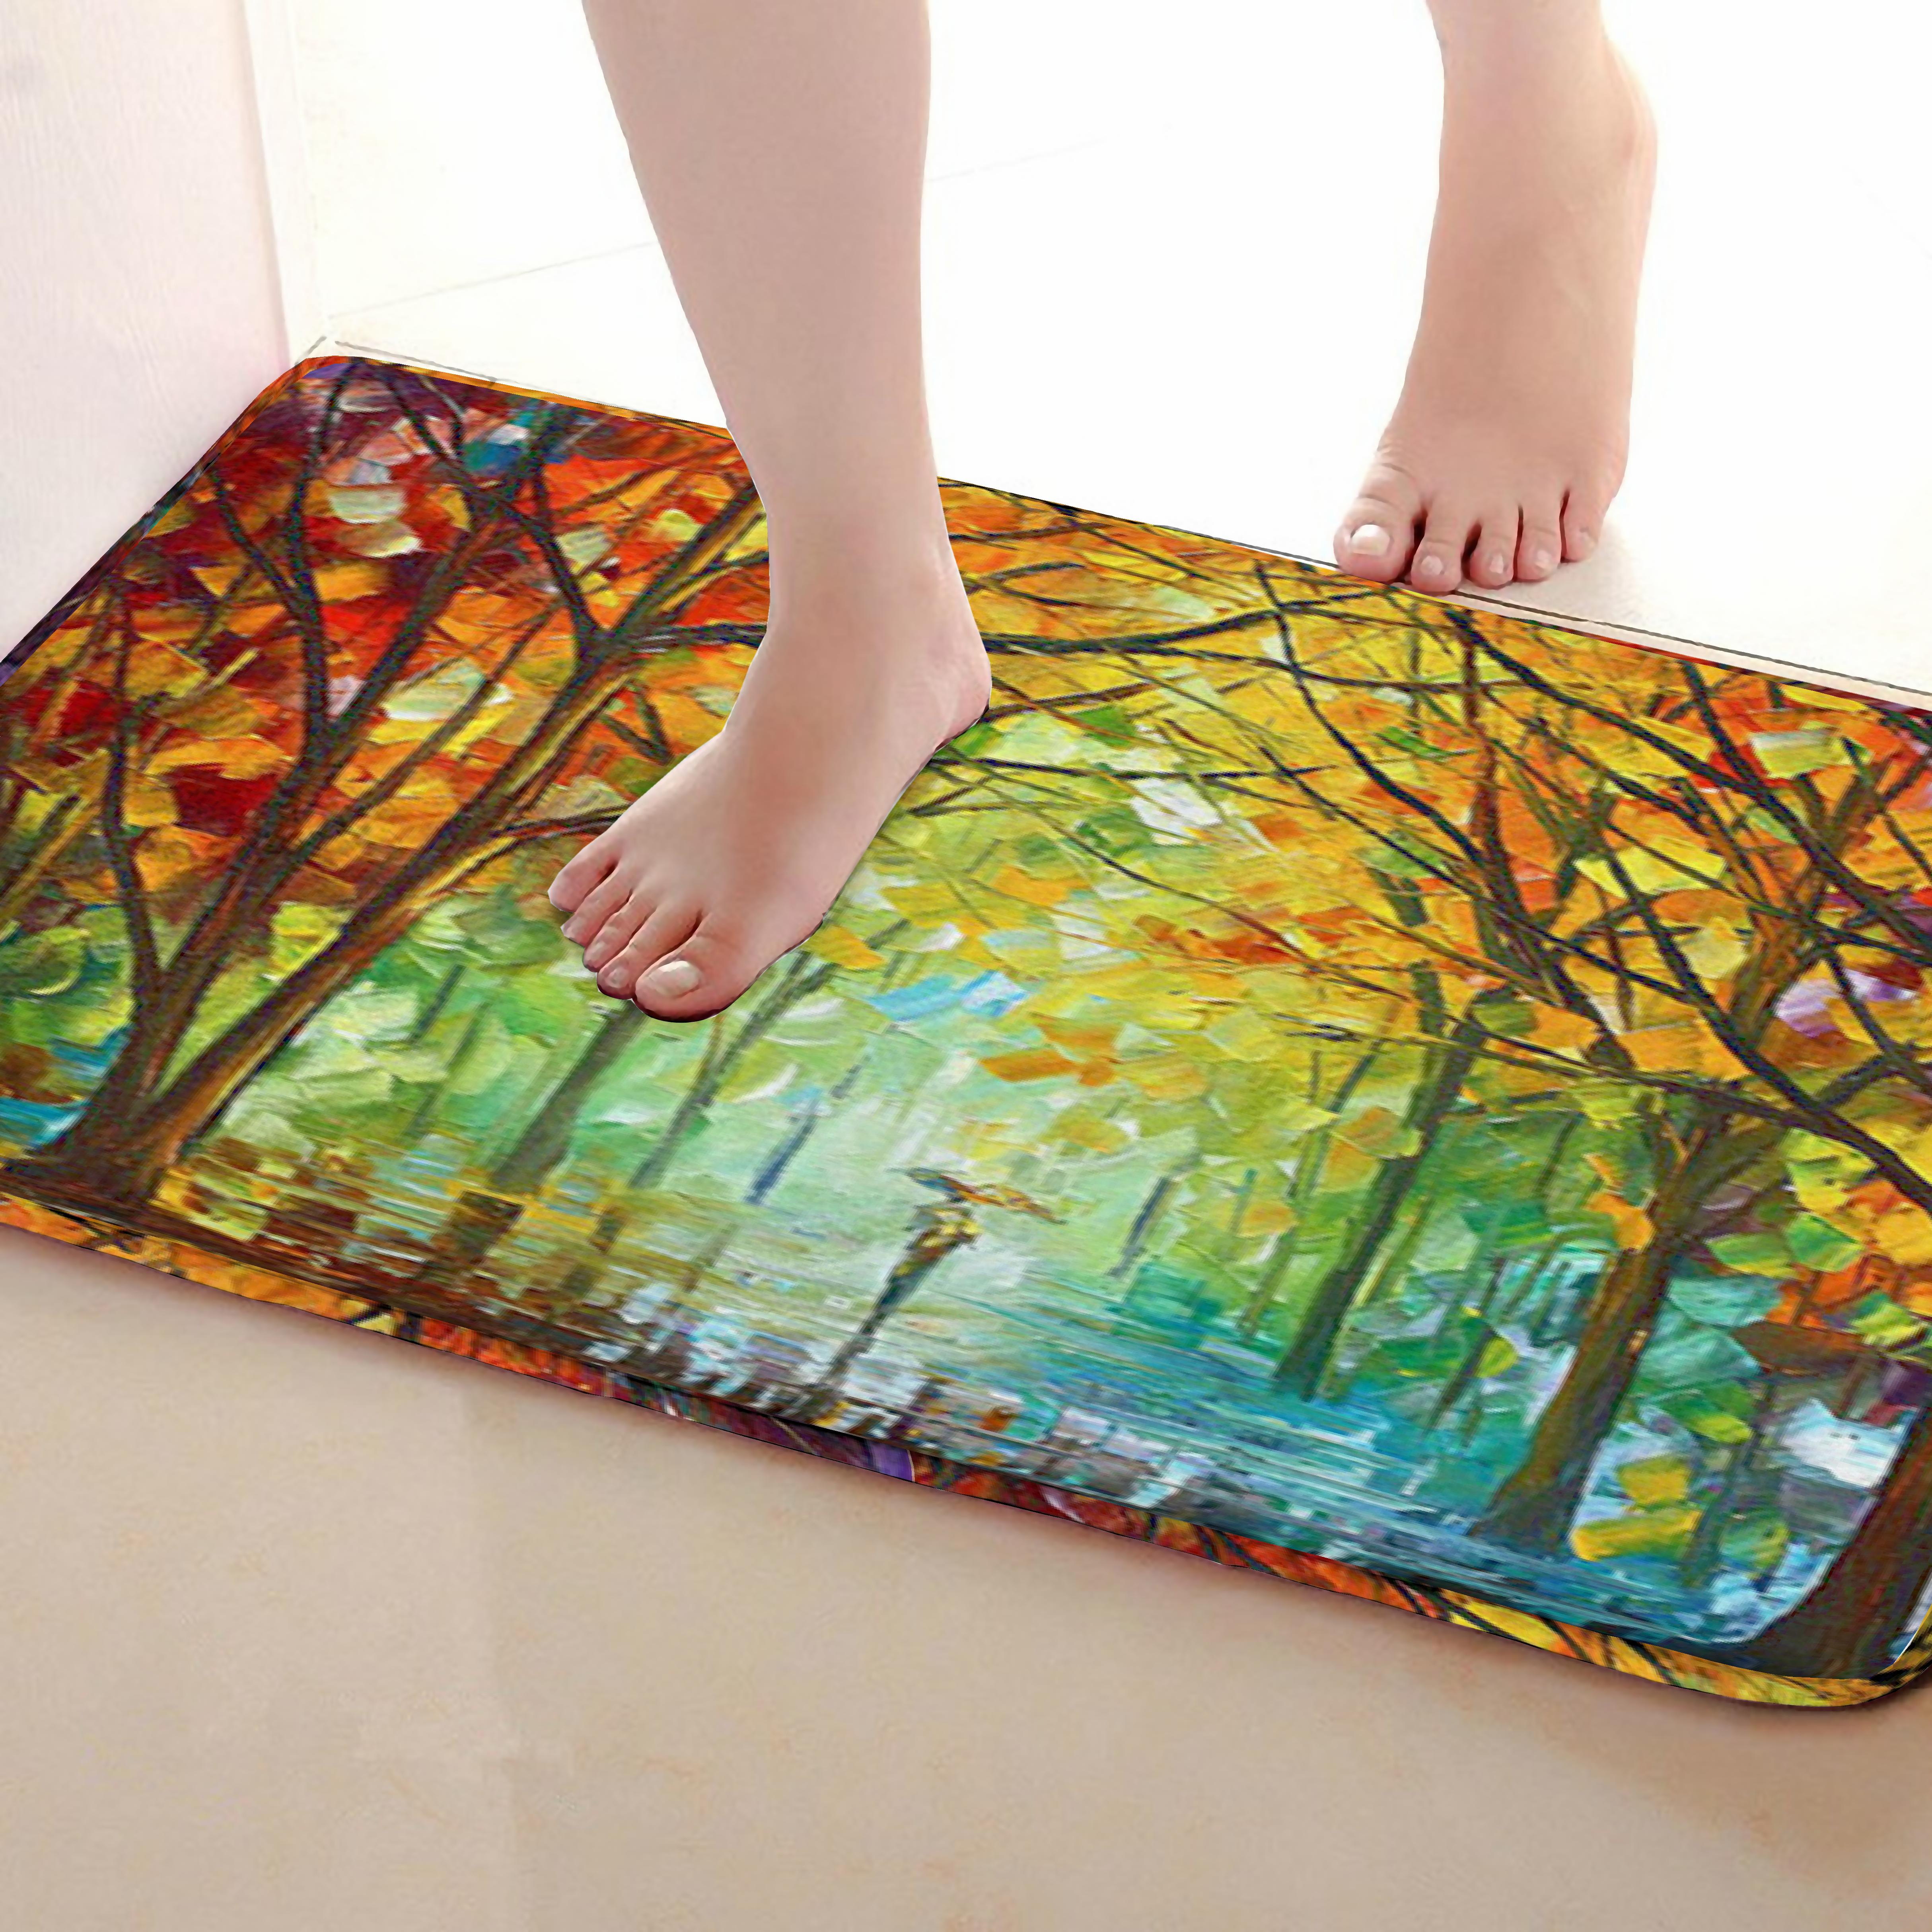 Forest Style Bathroom Mat,Funny Anti Skid Bath Mat,Shower Curtains Accessories,Matching Your Shower Curtain